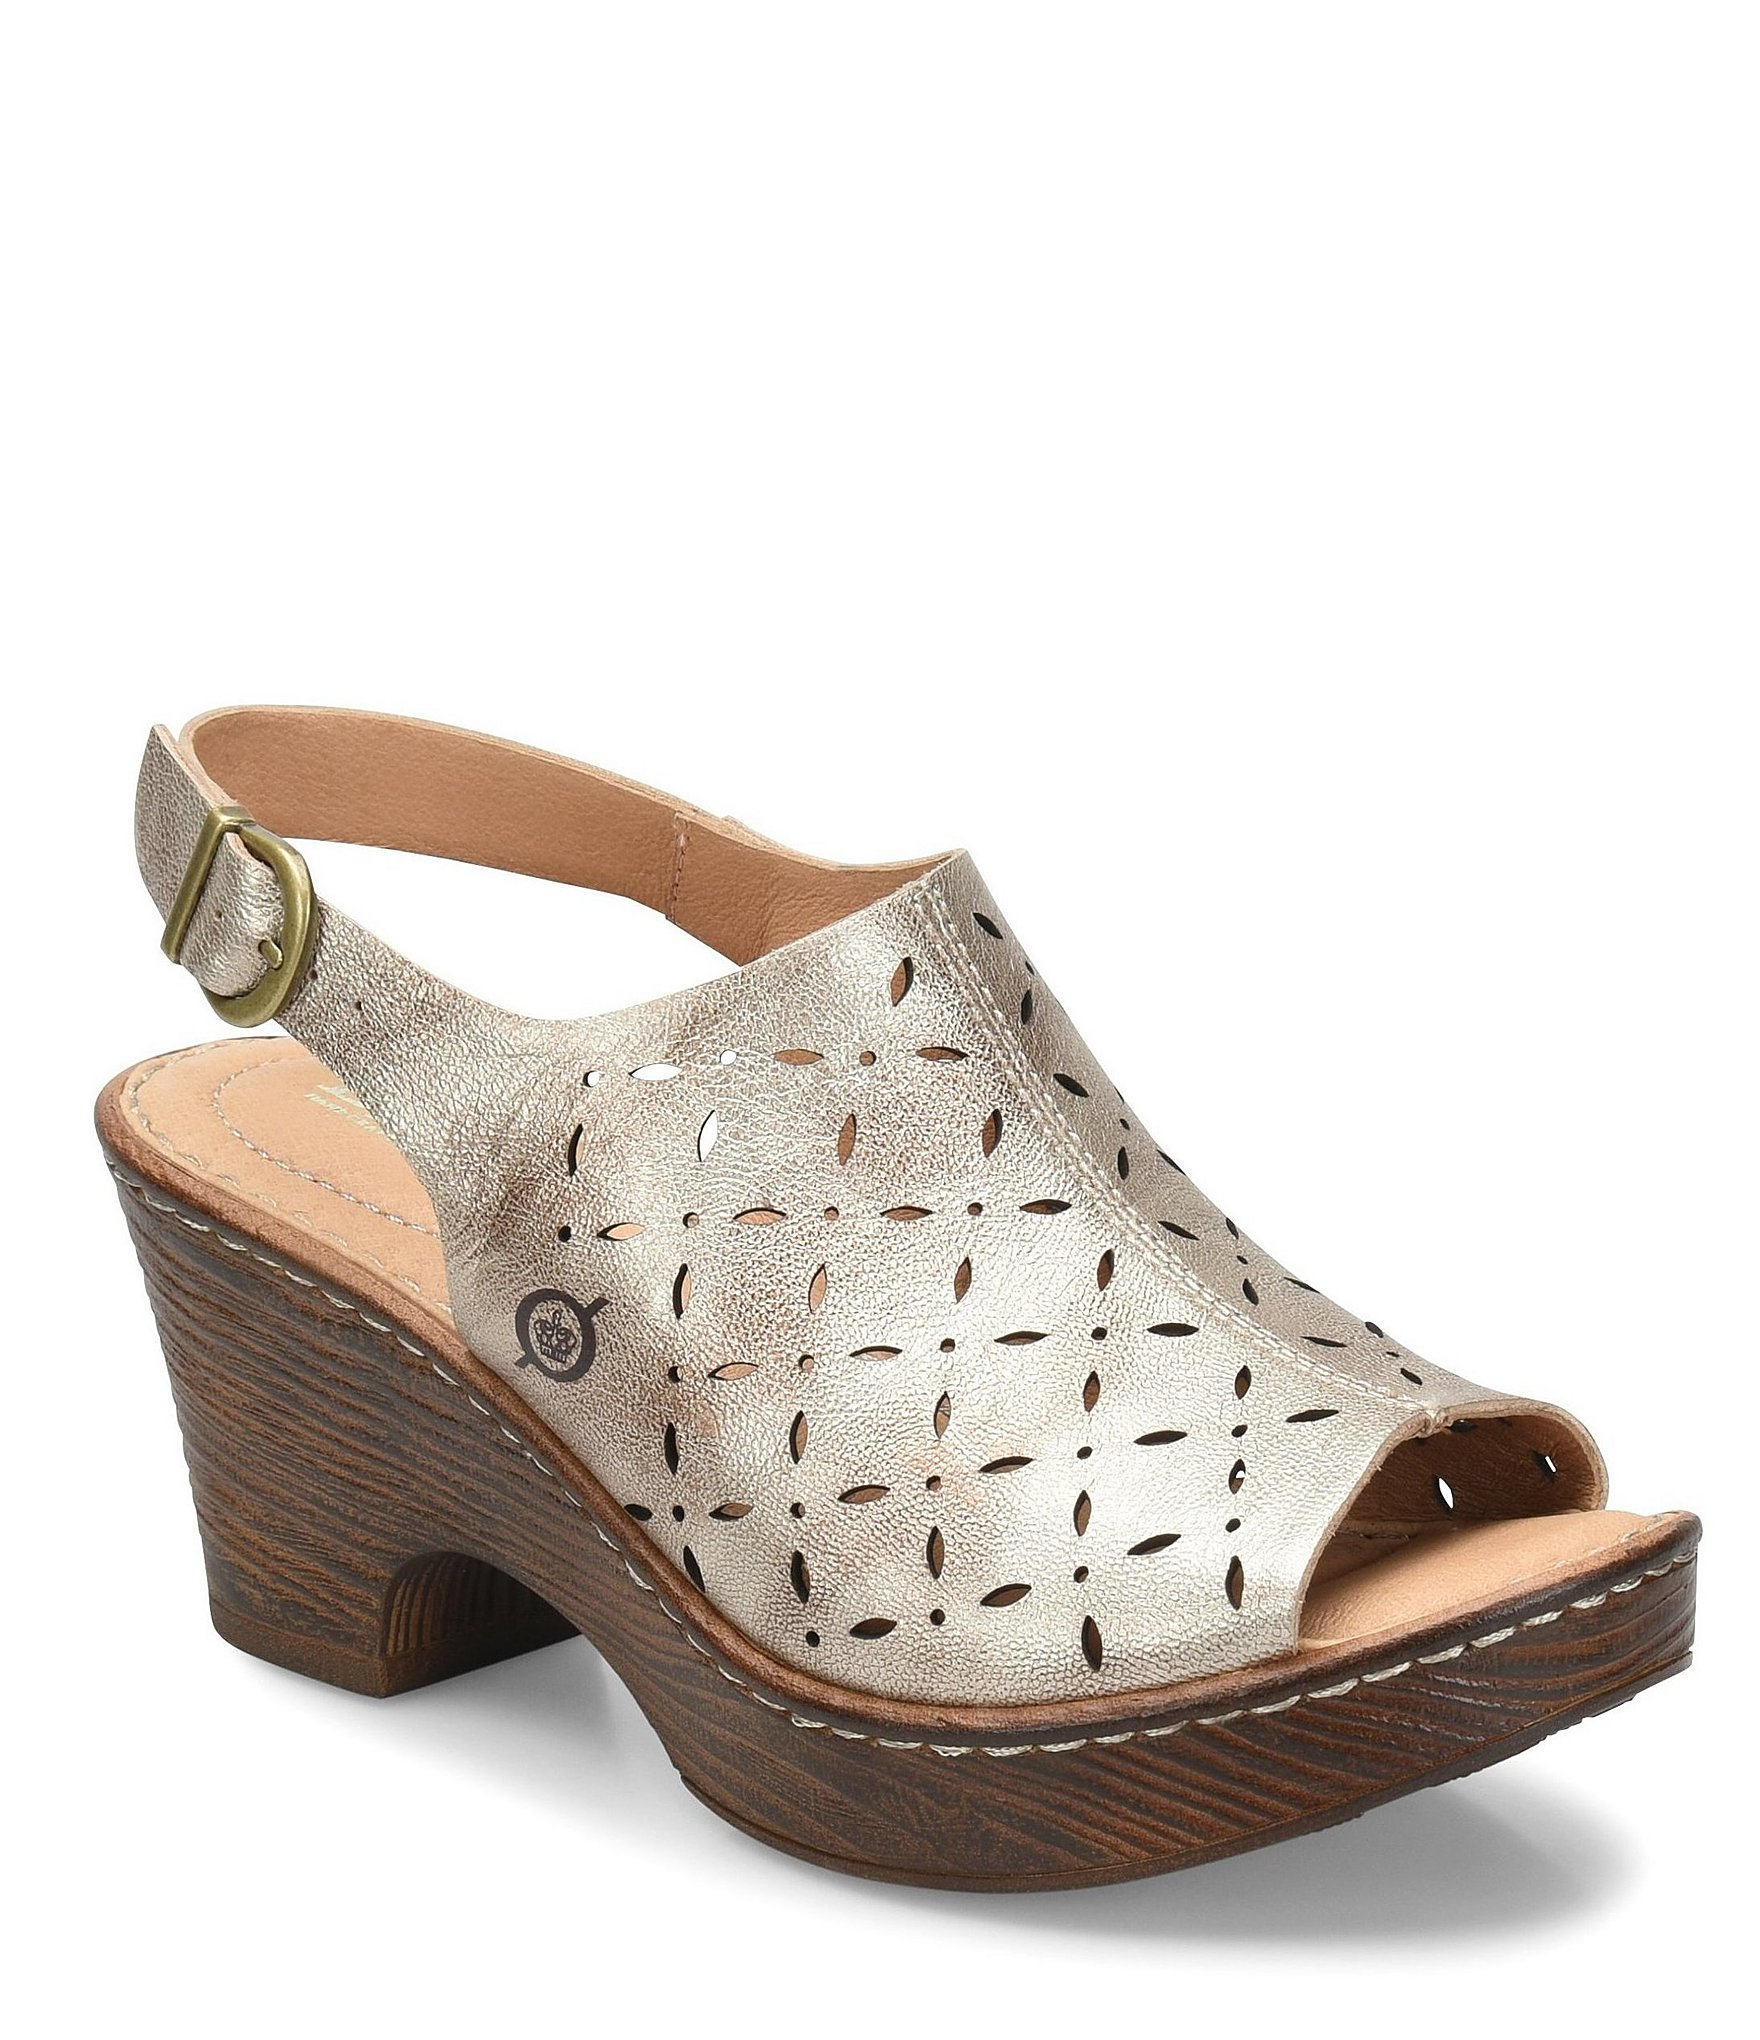 fcd4f96e3e2fa Women's Shoes | Dillard's